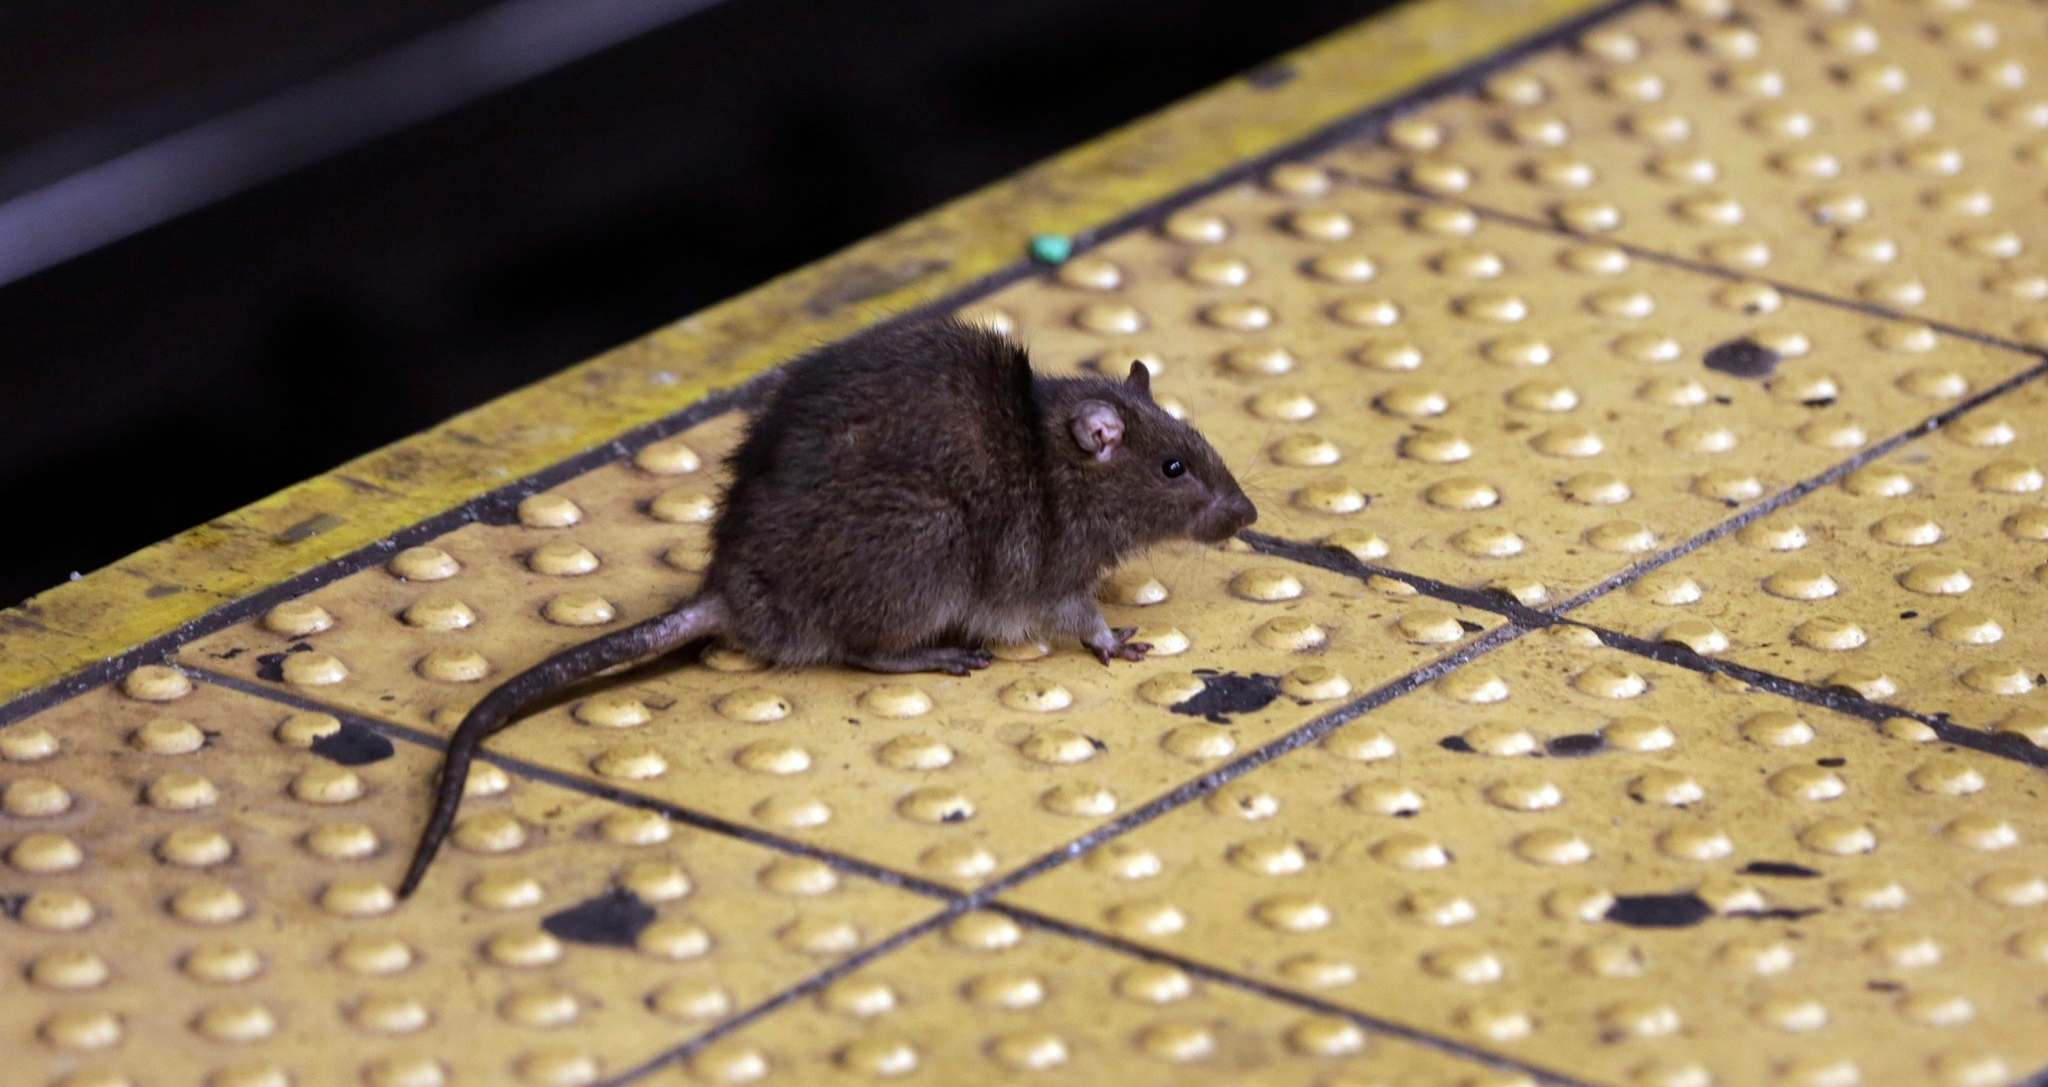 Study Suggests Gentrification Has >> Study Finds That Gentrification Has Caused A Rise In Rat Sightings